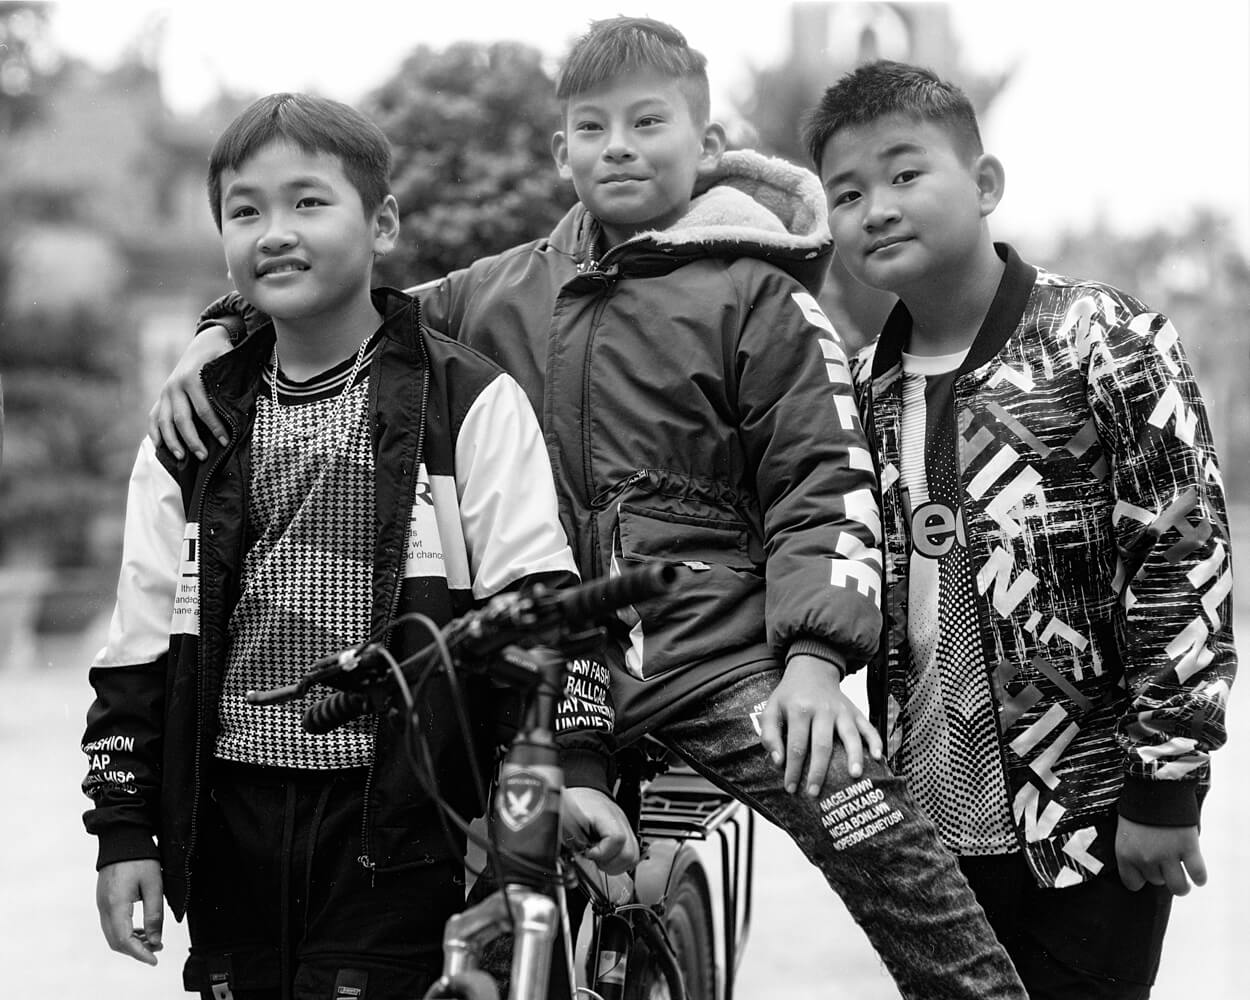 Three Best Friends - 5 Frames... Around Hai Phong, Vietnam on my 1920 Graflex RB Tele 4x5 and ILFORD HP5 PLUS (4x5 Format / EI 400 / Voigtlander Heliar 210mm f/4.5 c.1920 lens) - by Stuart Kinkade